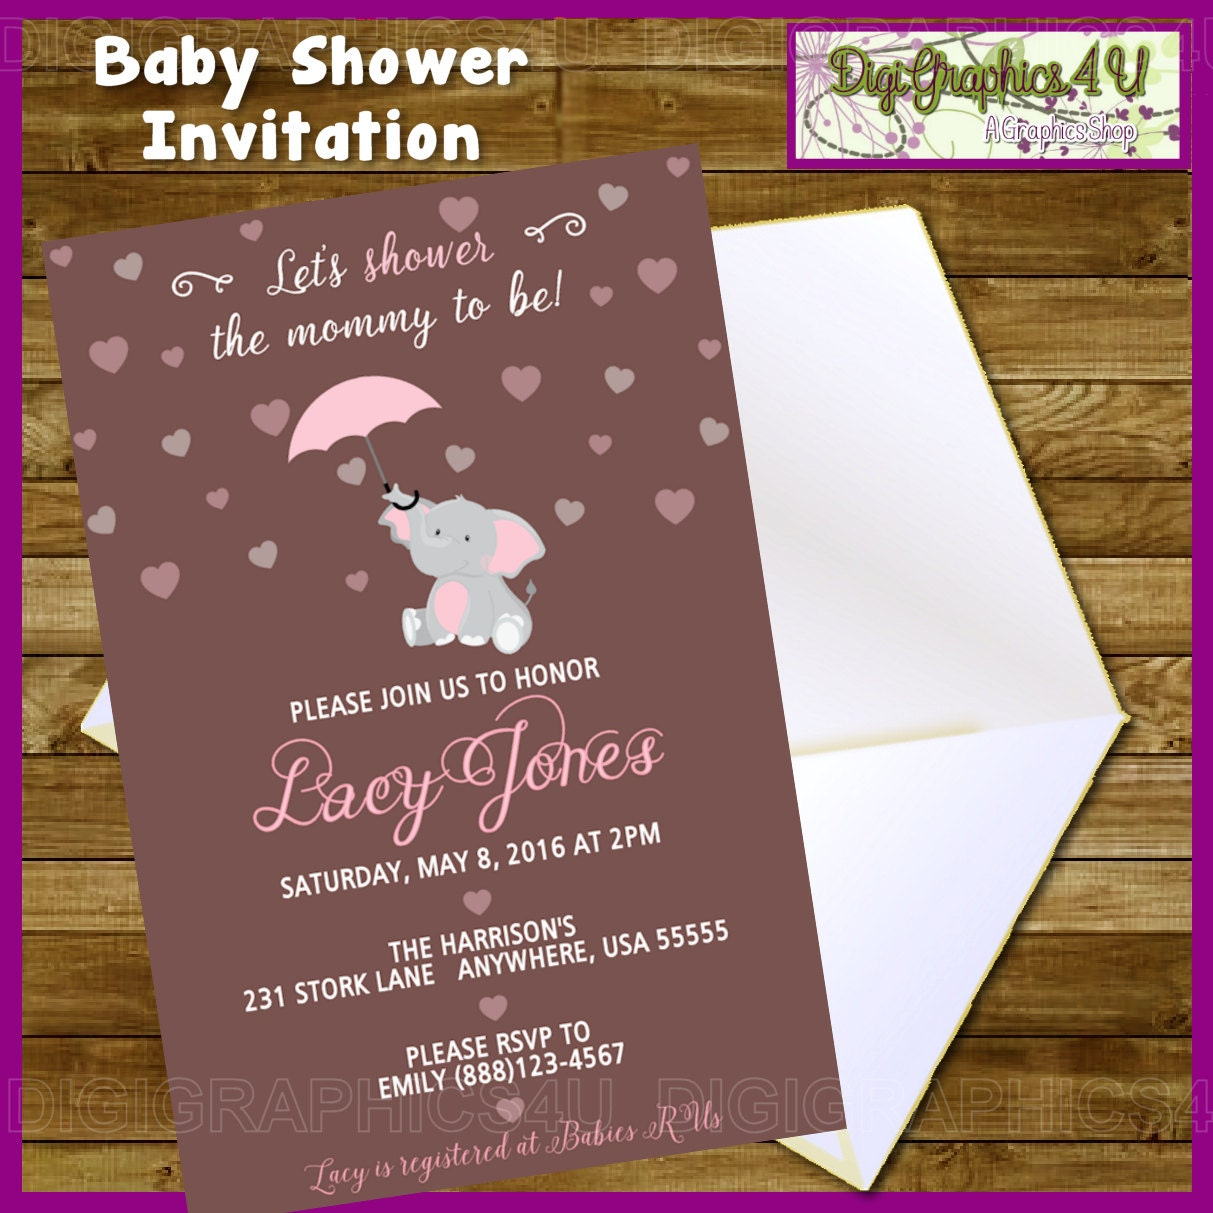 Elephant Themed Baby Shower: Elephant Themed Baby Shower Printable By DigiGraphics4u On